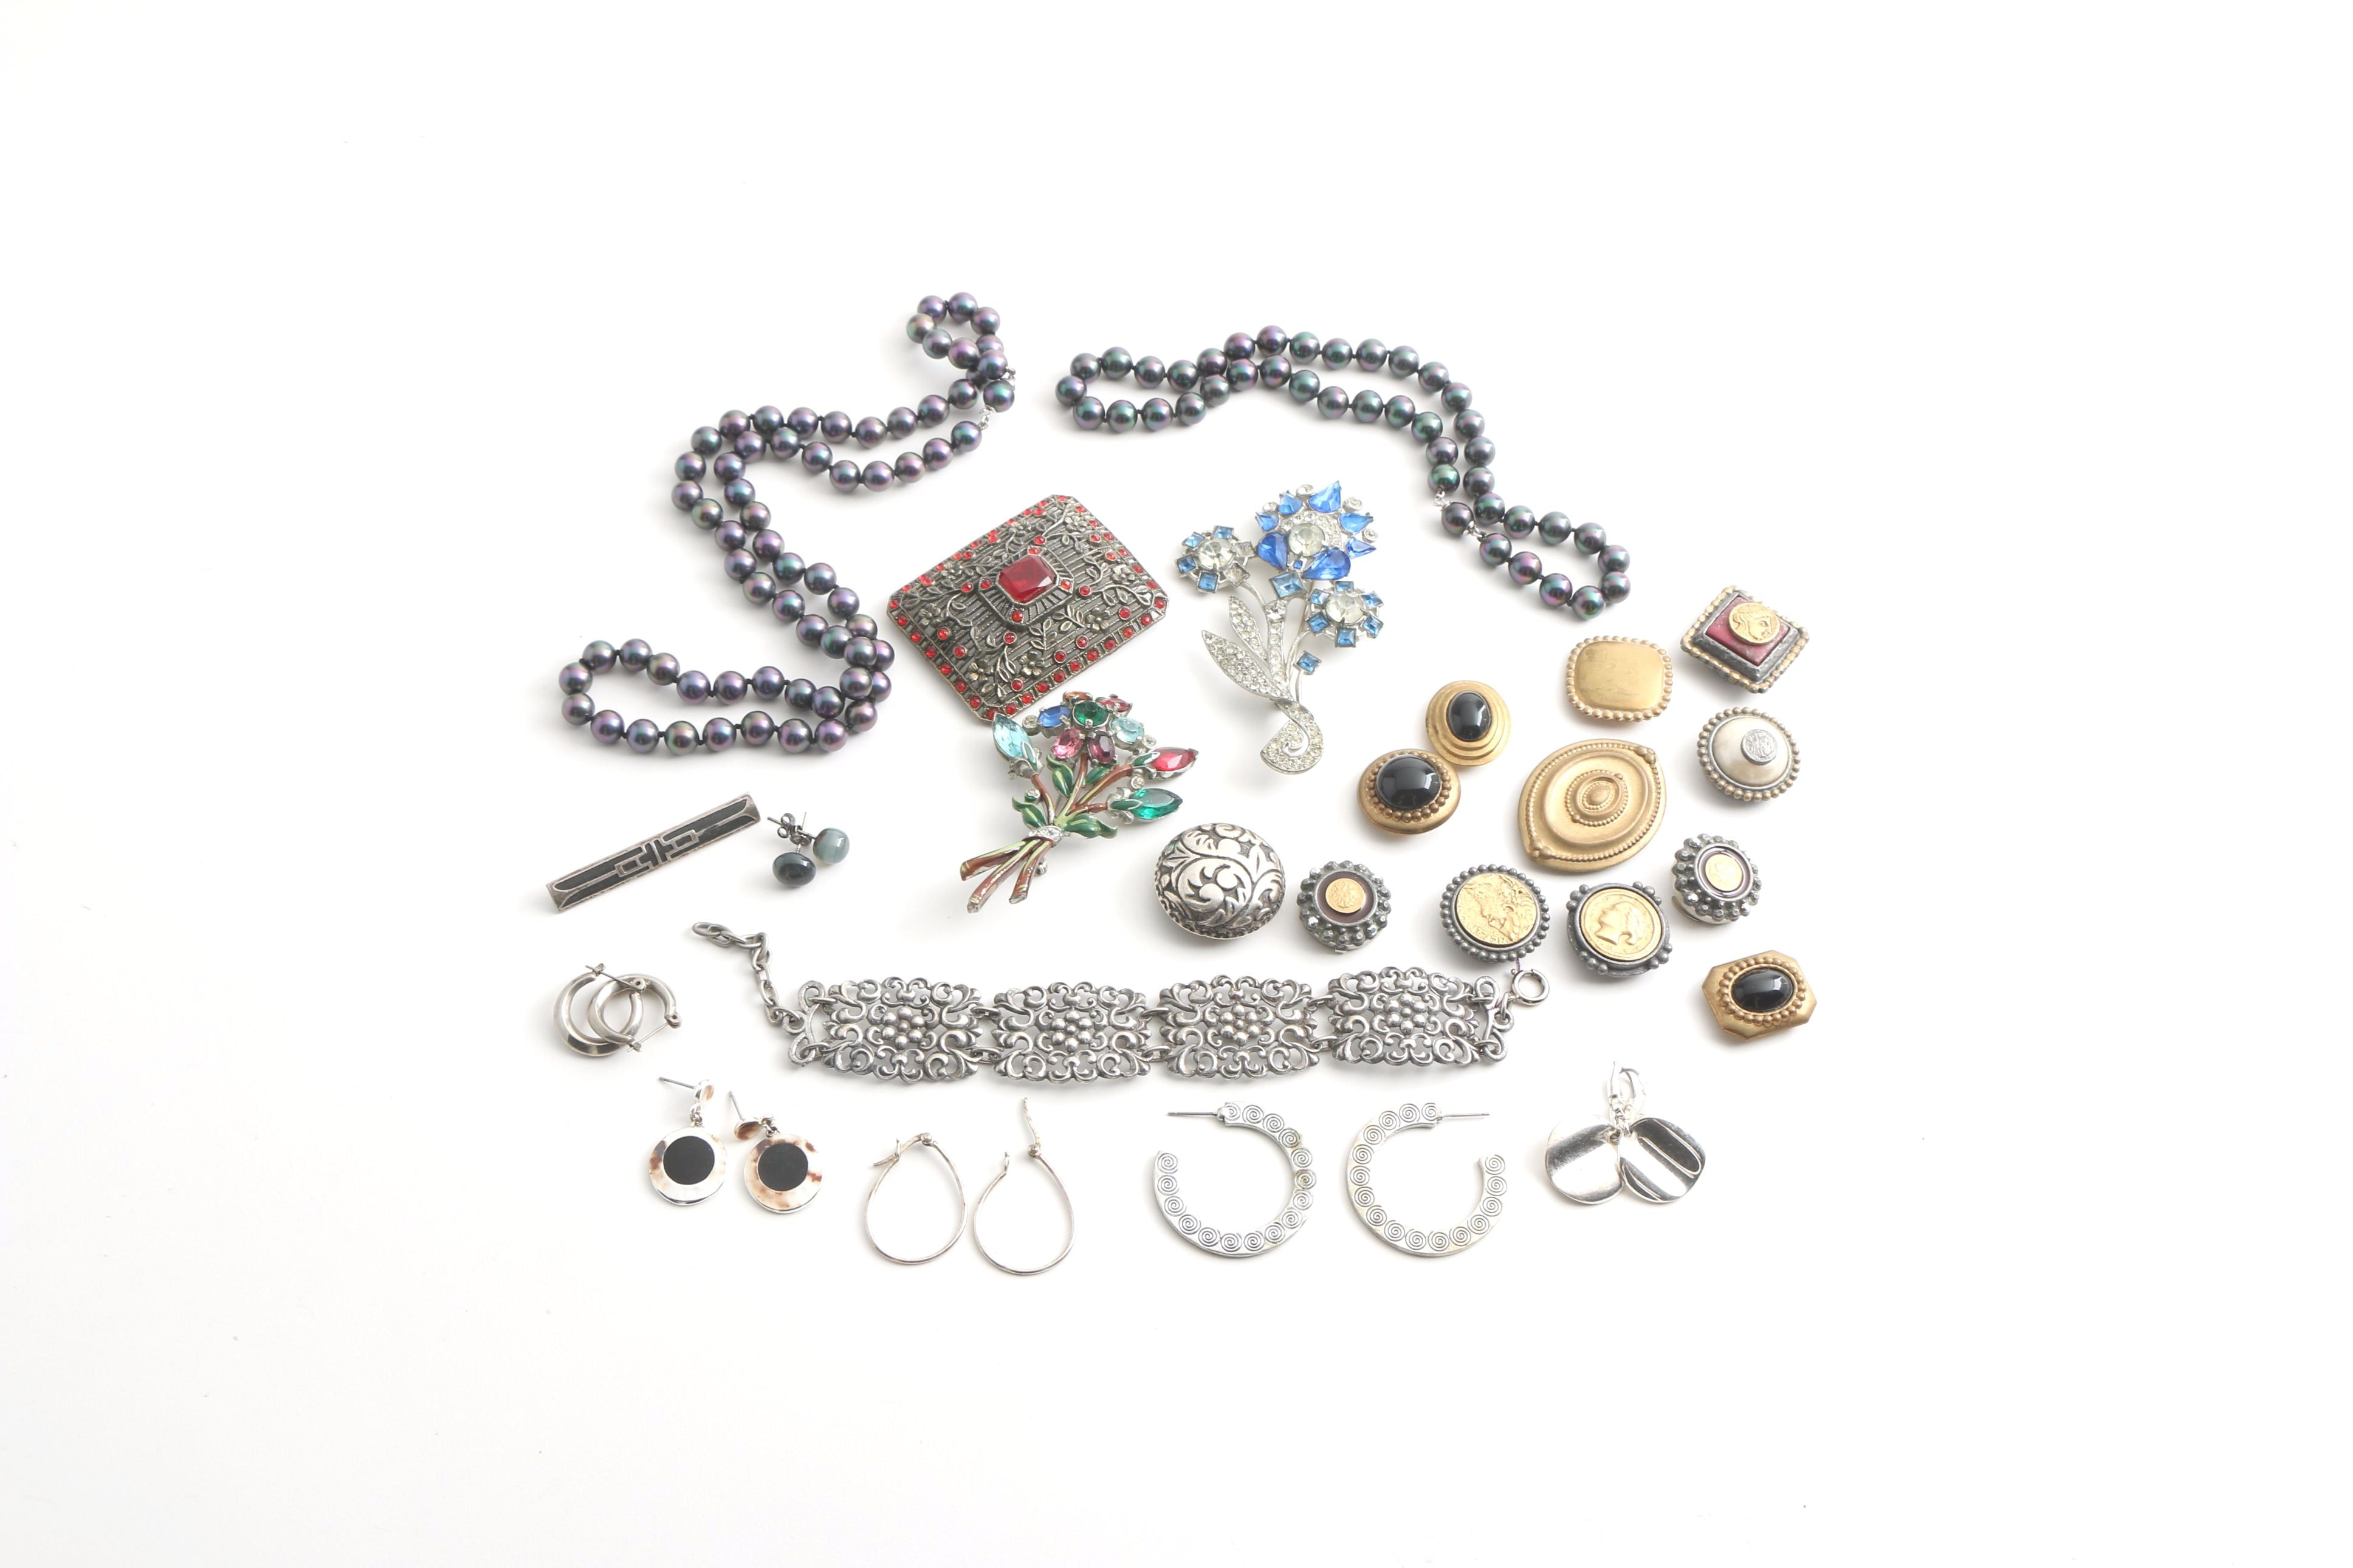 Assortment of Jewelry Including Vintage Pieces